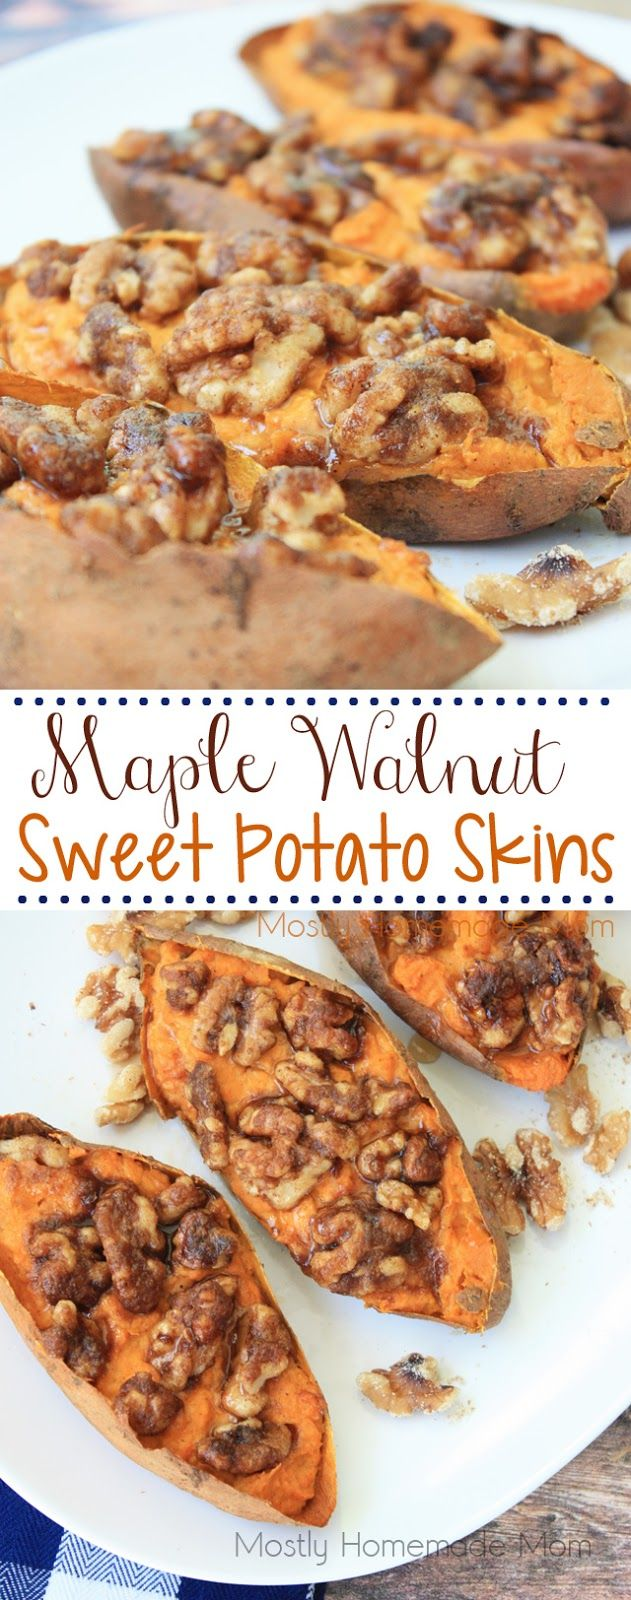 Maple Walnut Sweet Potato Skins - the perfect appetizer recipe or side dish this fall! Oven roasted sweet potatoes with brown sugar, walnuts, and spices! @cawalnuts #walnuts #CG #ad